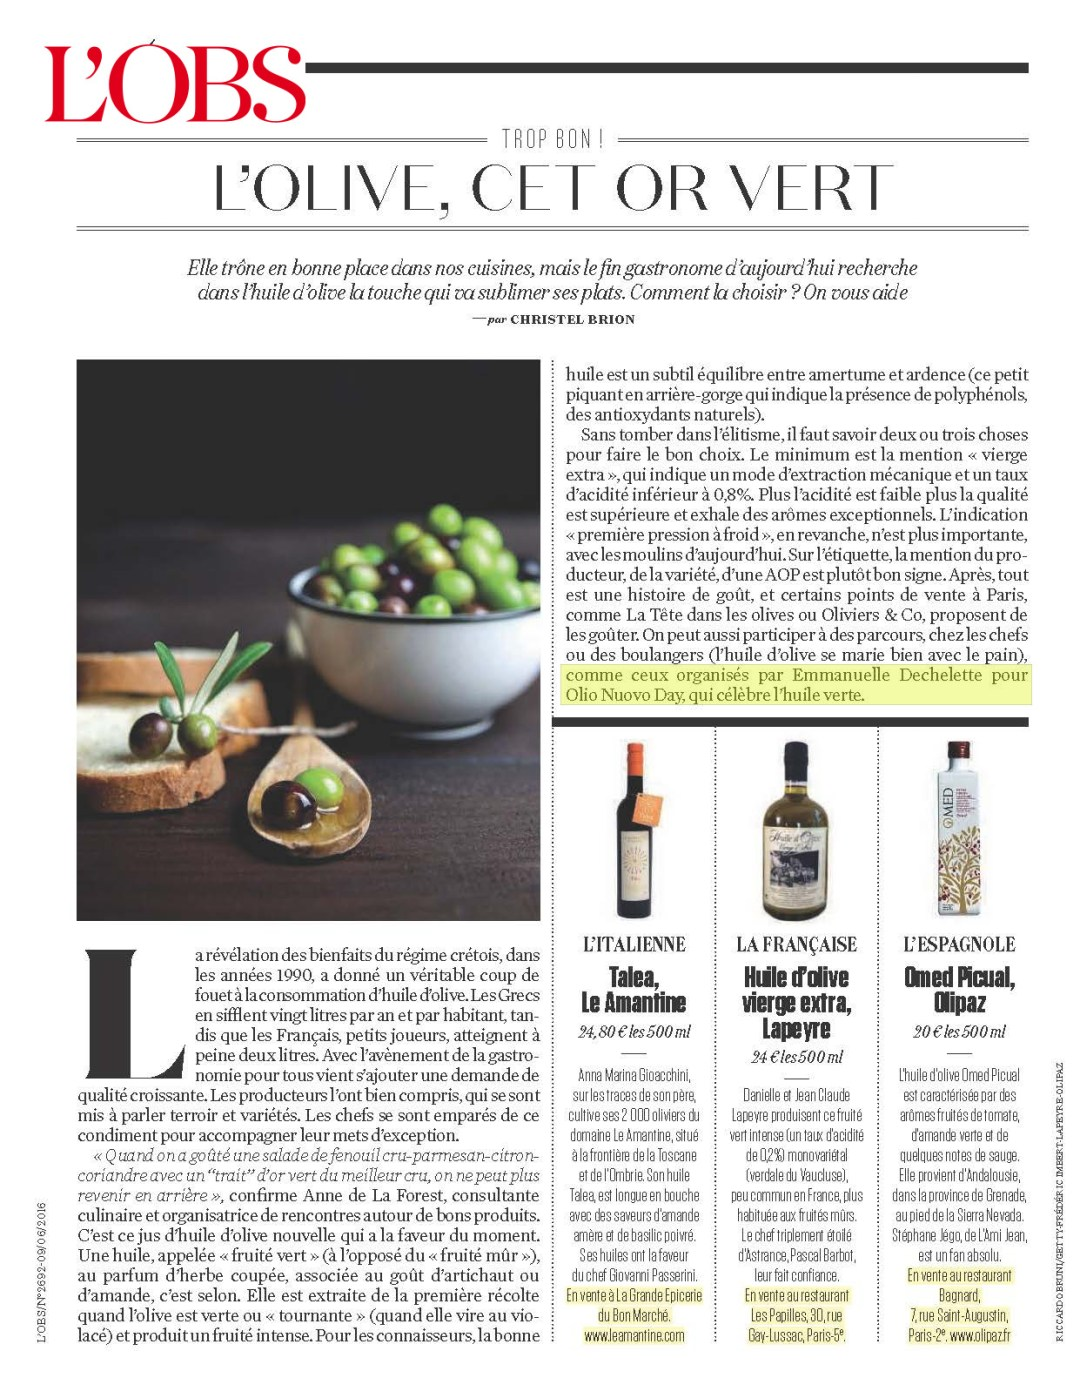 Les huiles d'olive Olio Nuovo Days dans L'OBS